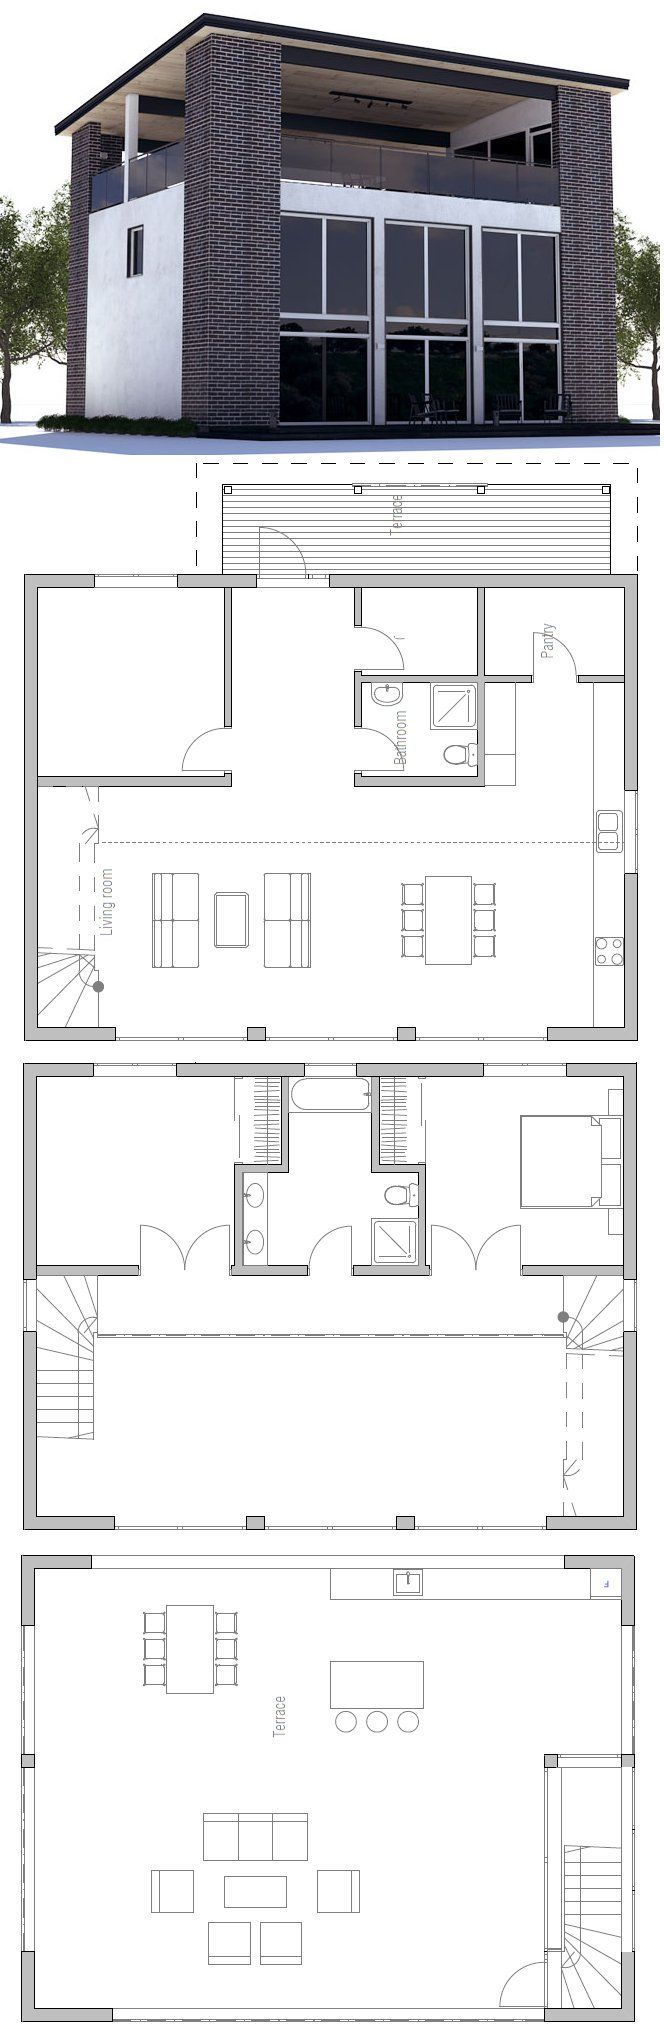 Small House to tiny lot with three bedrooms. Roof top terrace. Floor Plan from ConceptHome.com